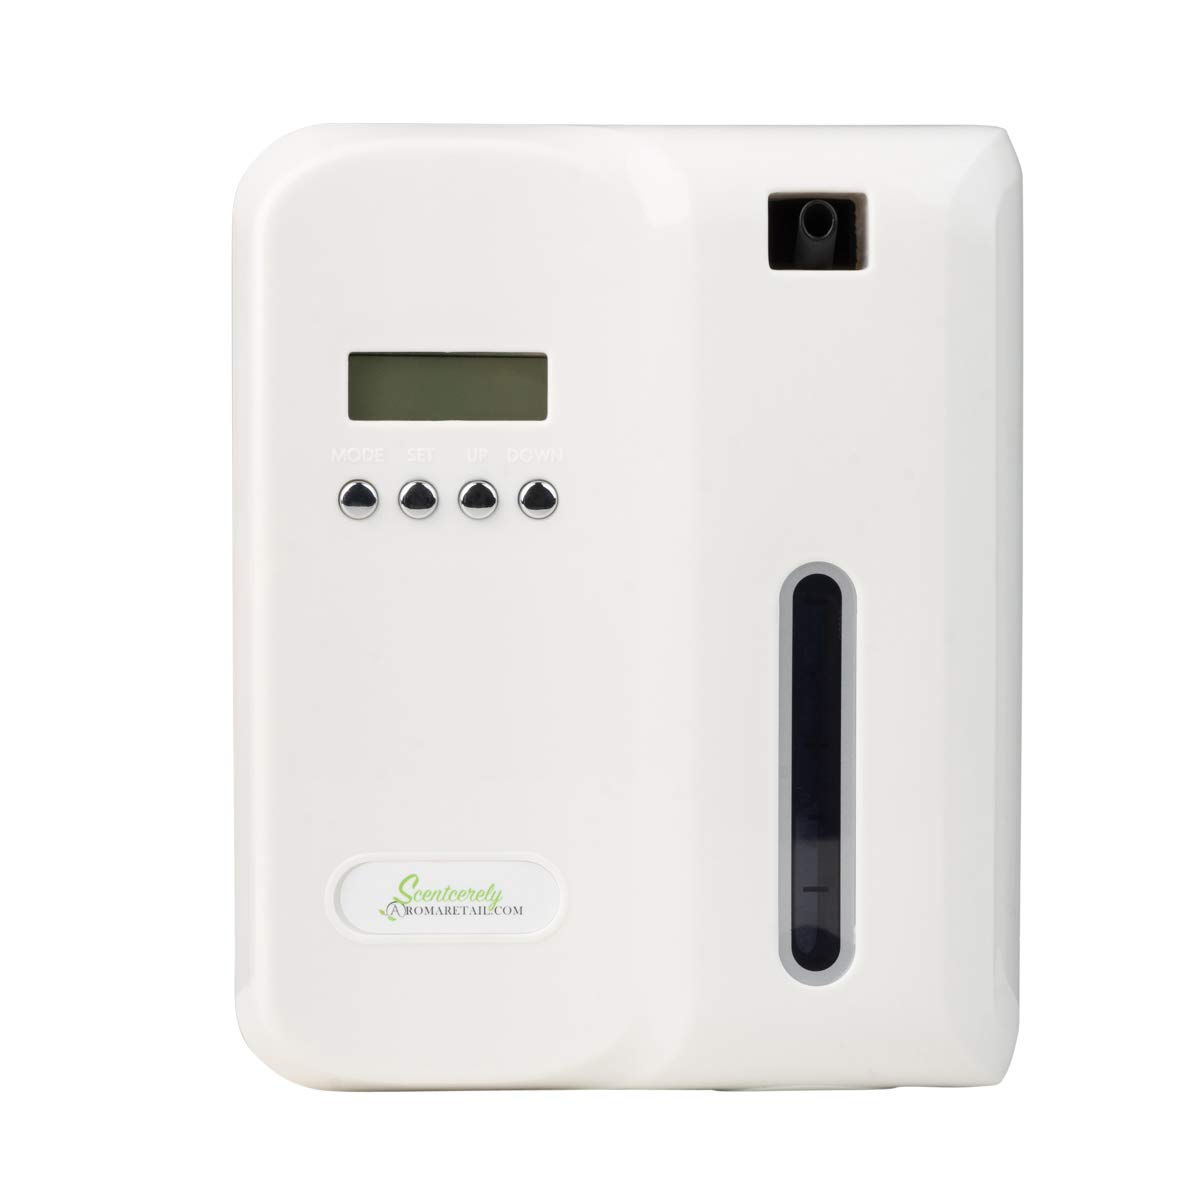 Aroma Diffusion Machine - Fragrance Oil Diffuser, Scent Machine, Mechanical Diffuser by Scentcerely - Aroma Retail